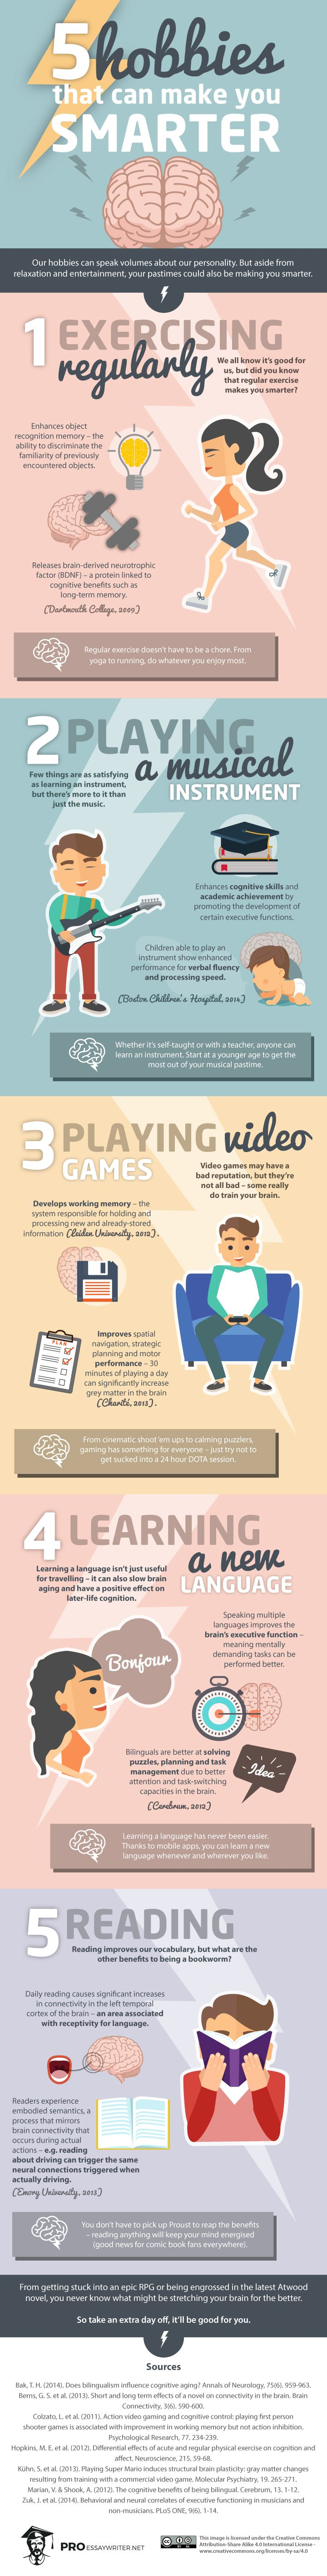 best ideas about essay writer creative writing what are 5 fun hobbies that can make you smarter infographic